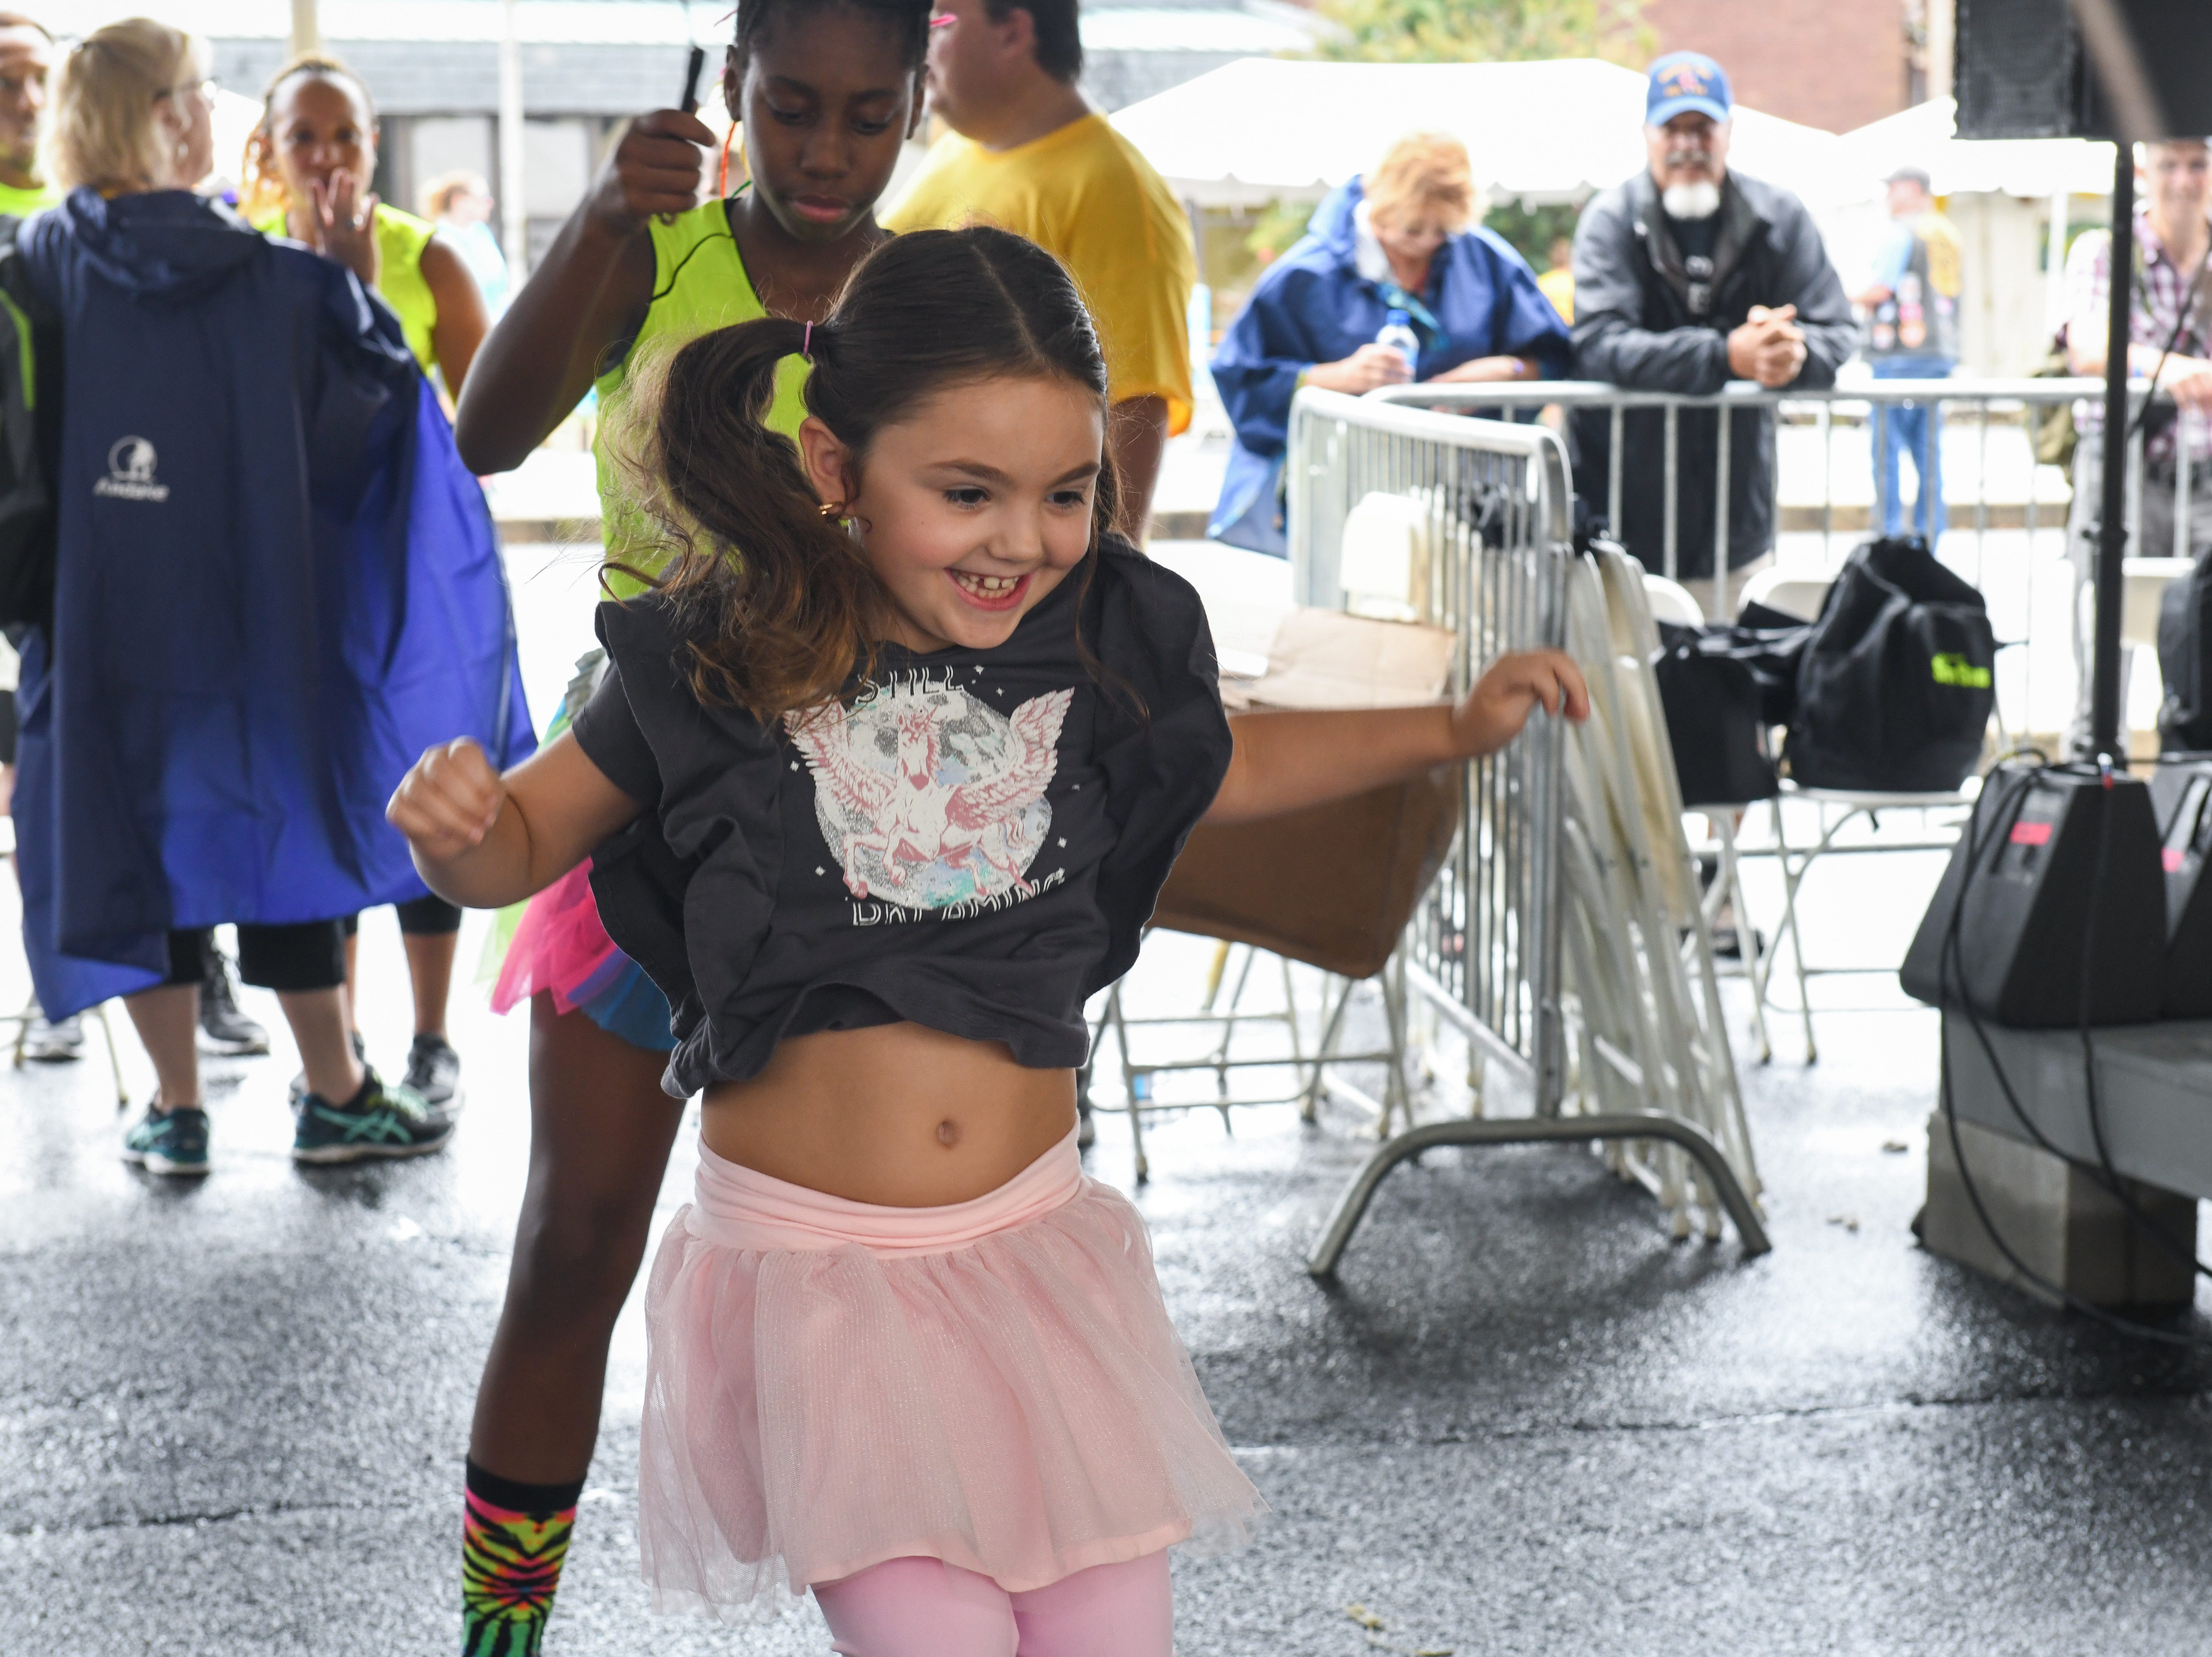 7-year-old Hadley Rugel jumps rope with the Greenbelt S.I.T.Y Stars precision jumprope team at the National Folk Festival in Salisbury on Saturday, Sept. 8.